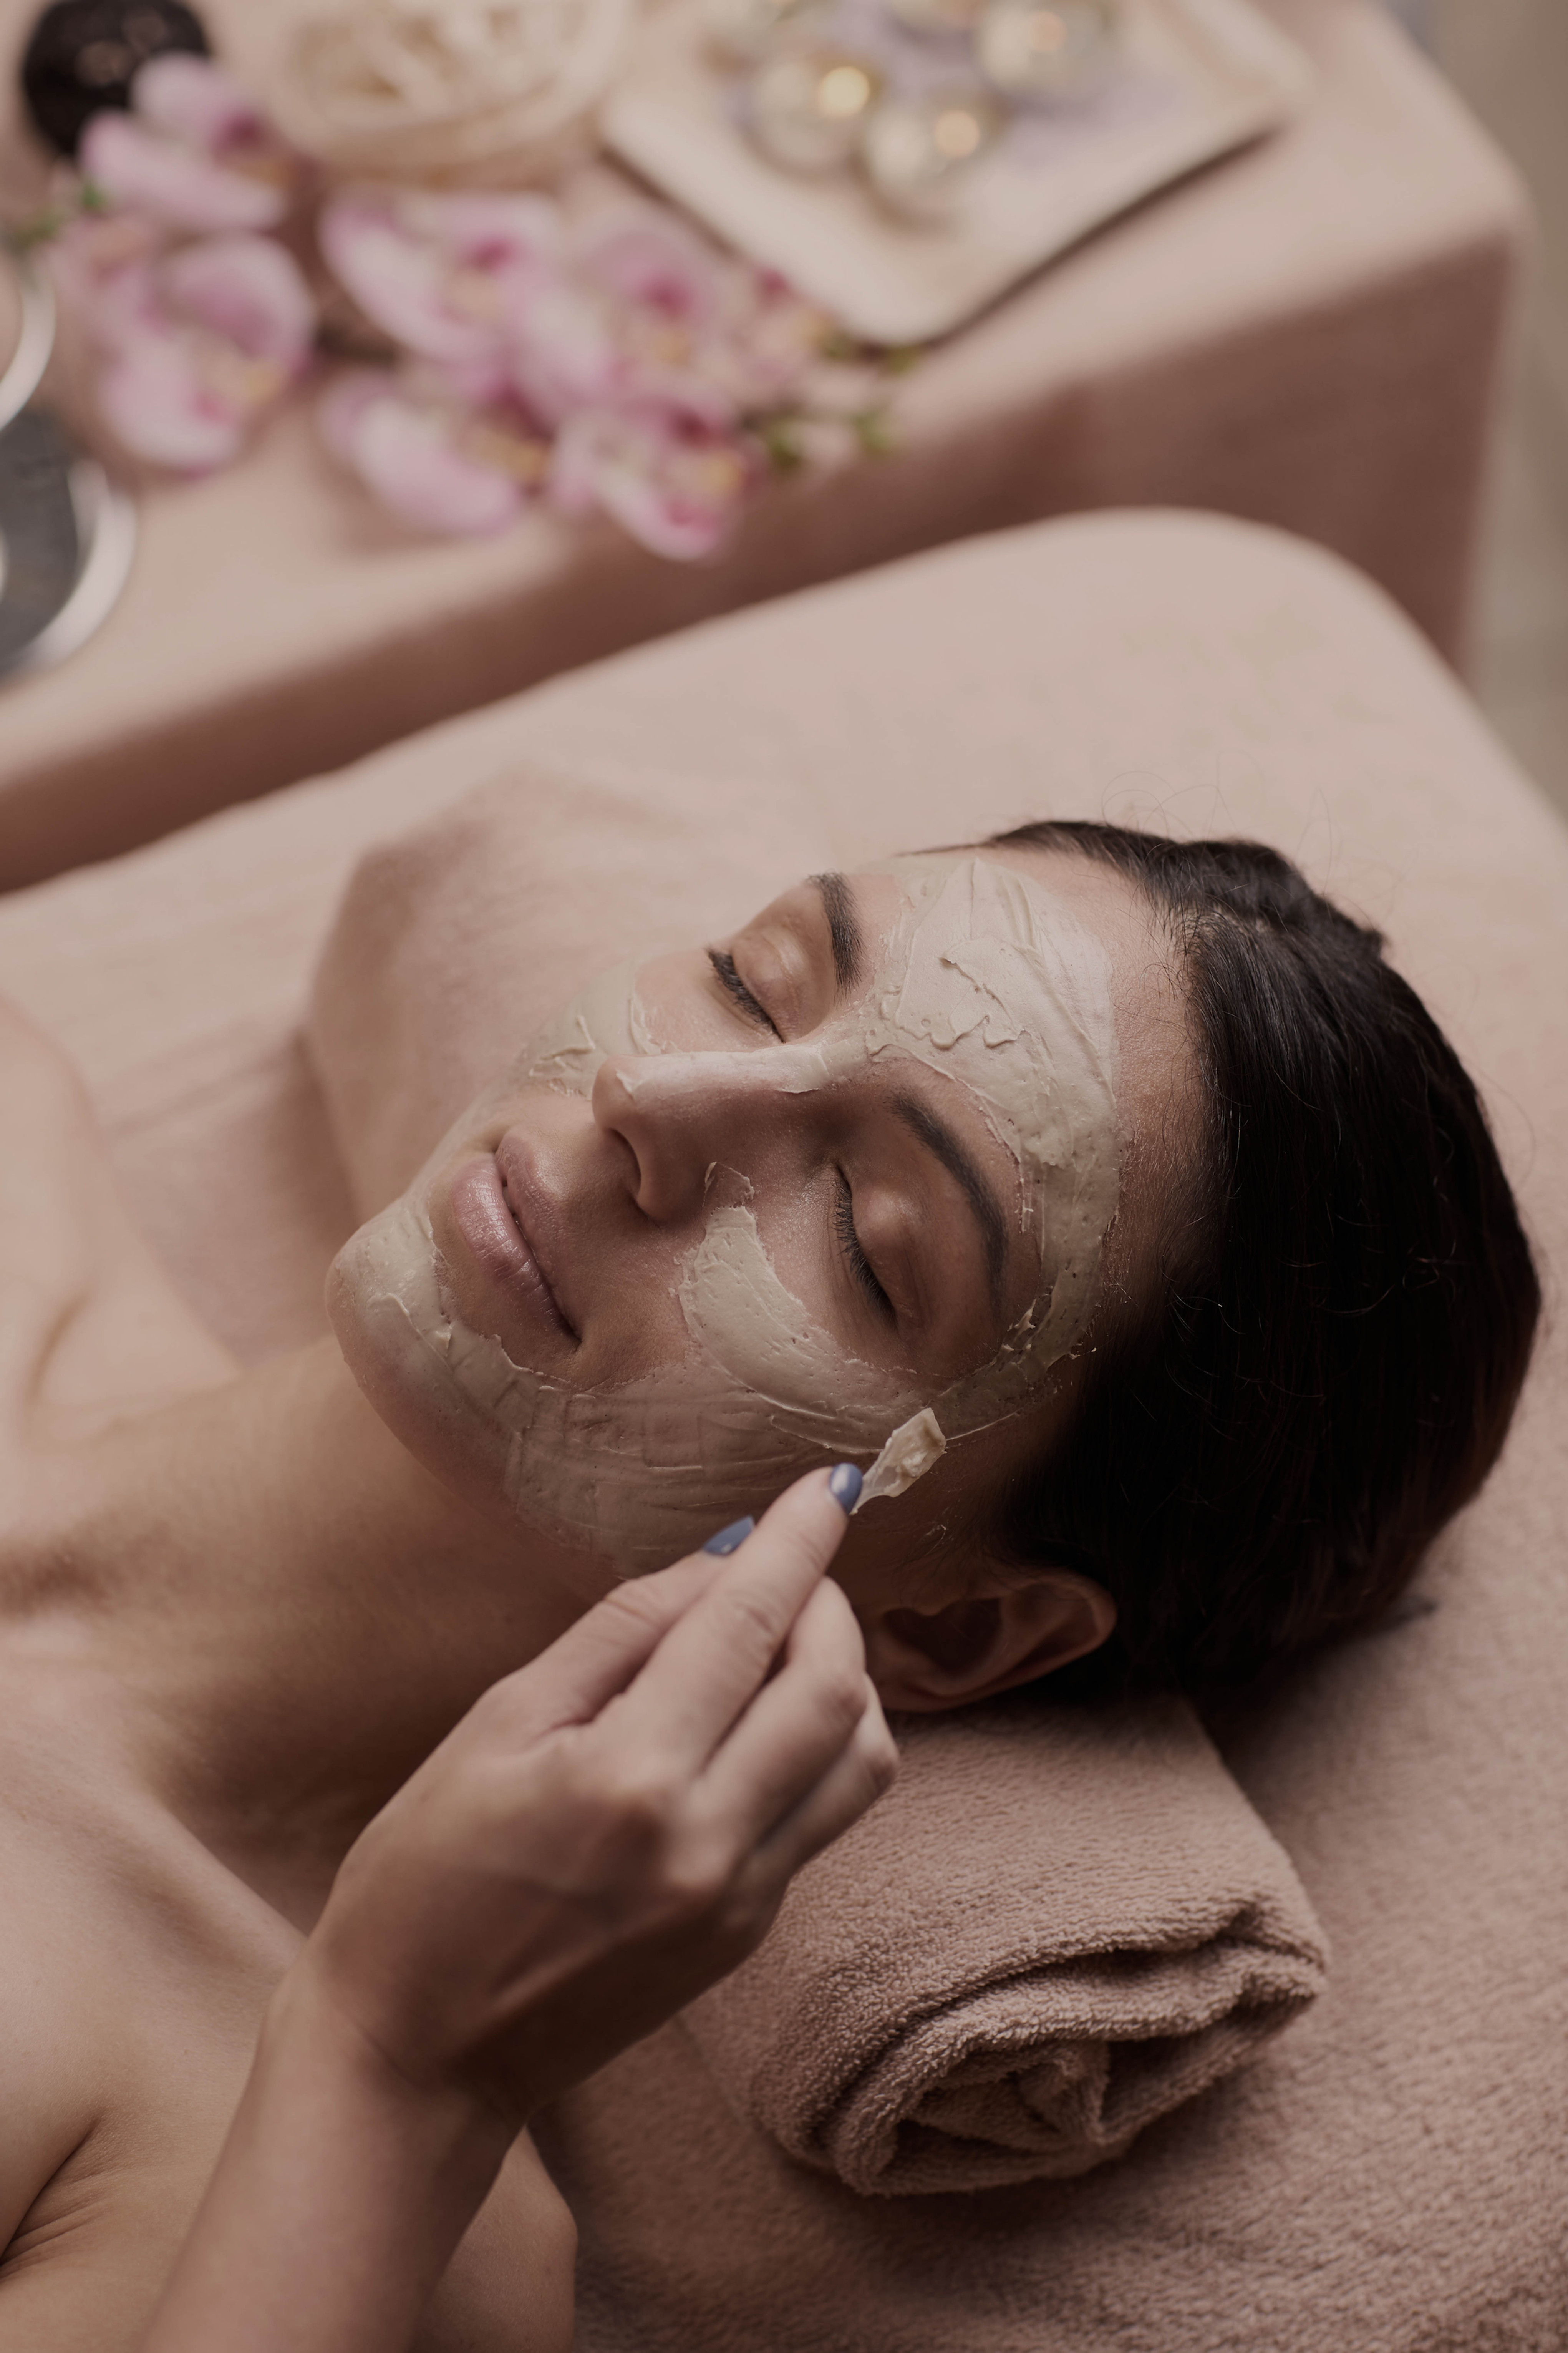 Equanimity Facial Added Value